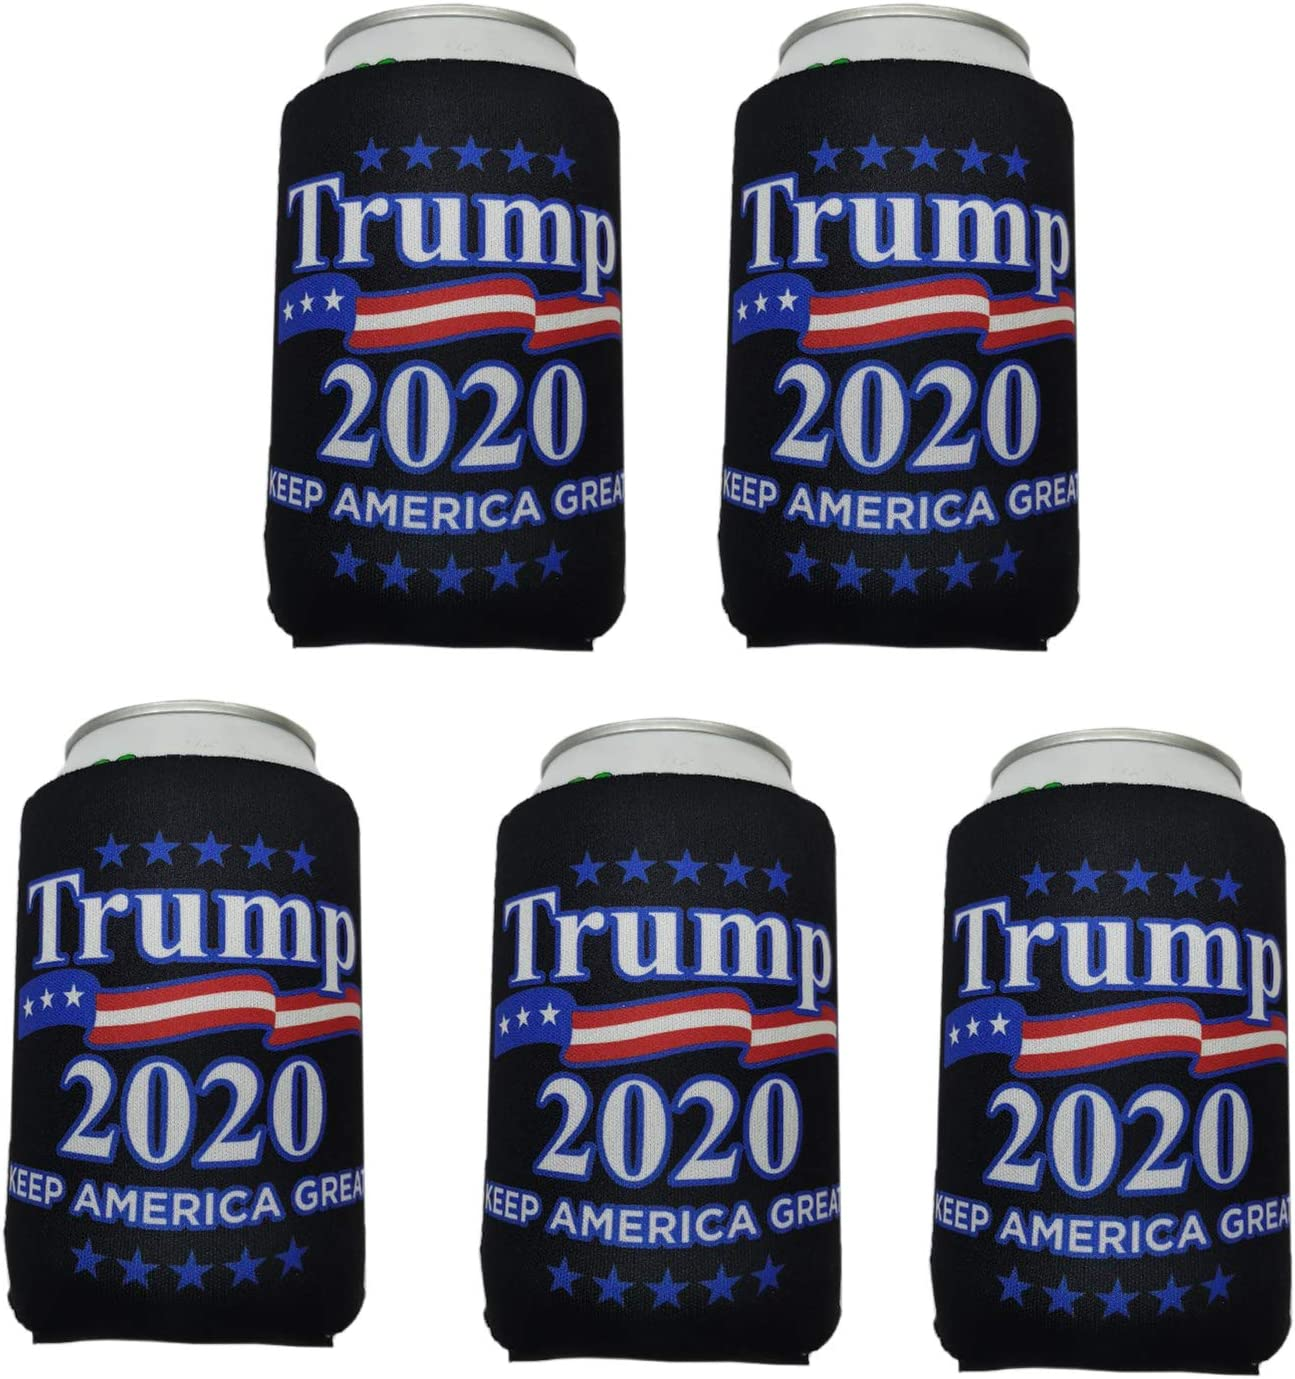 Hoijay 5pcs Neoprene Slim Beer Can Cooler,Foldable Stubby Holders of Beverage Coolers for 12-16oz Energy Drink & Beer Cans Trump MAGA 2020